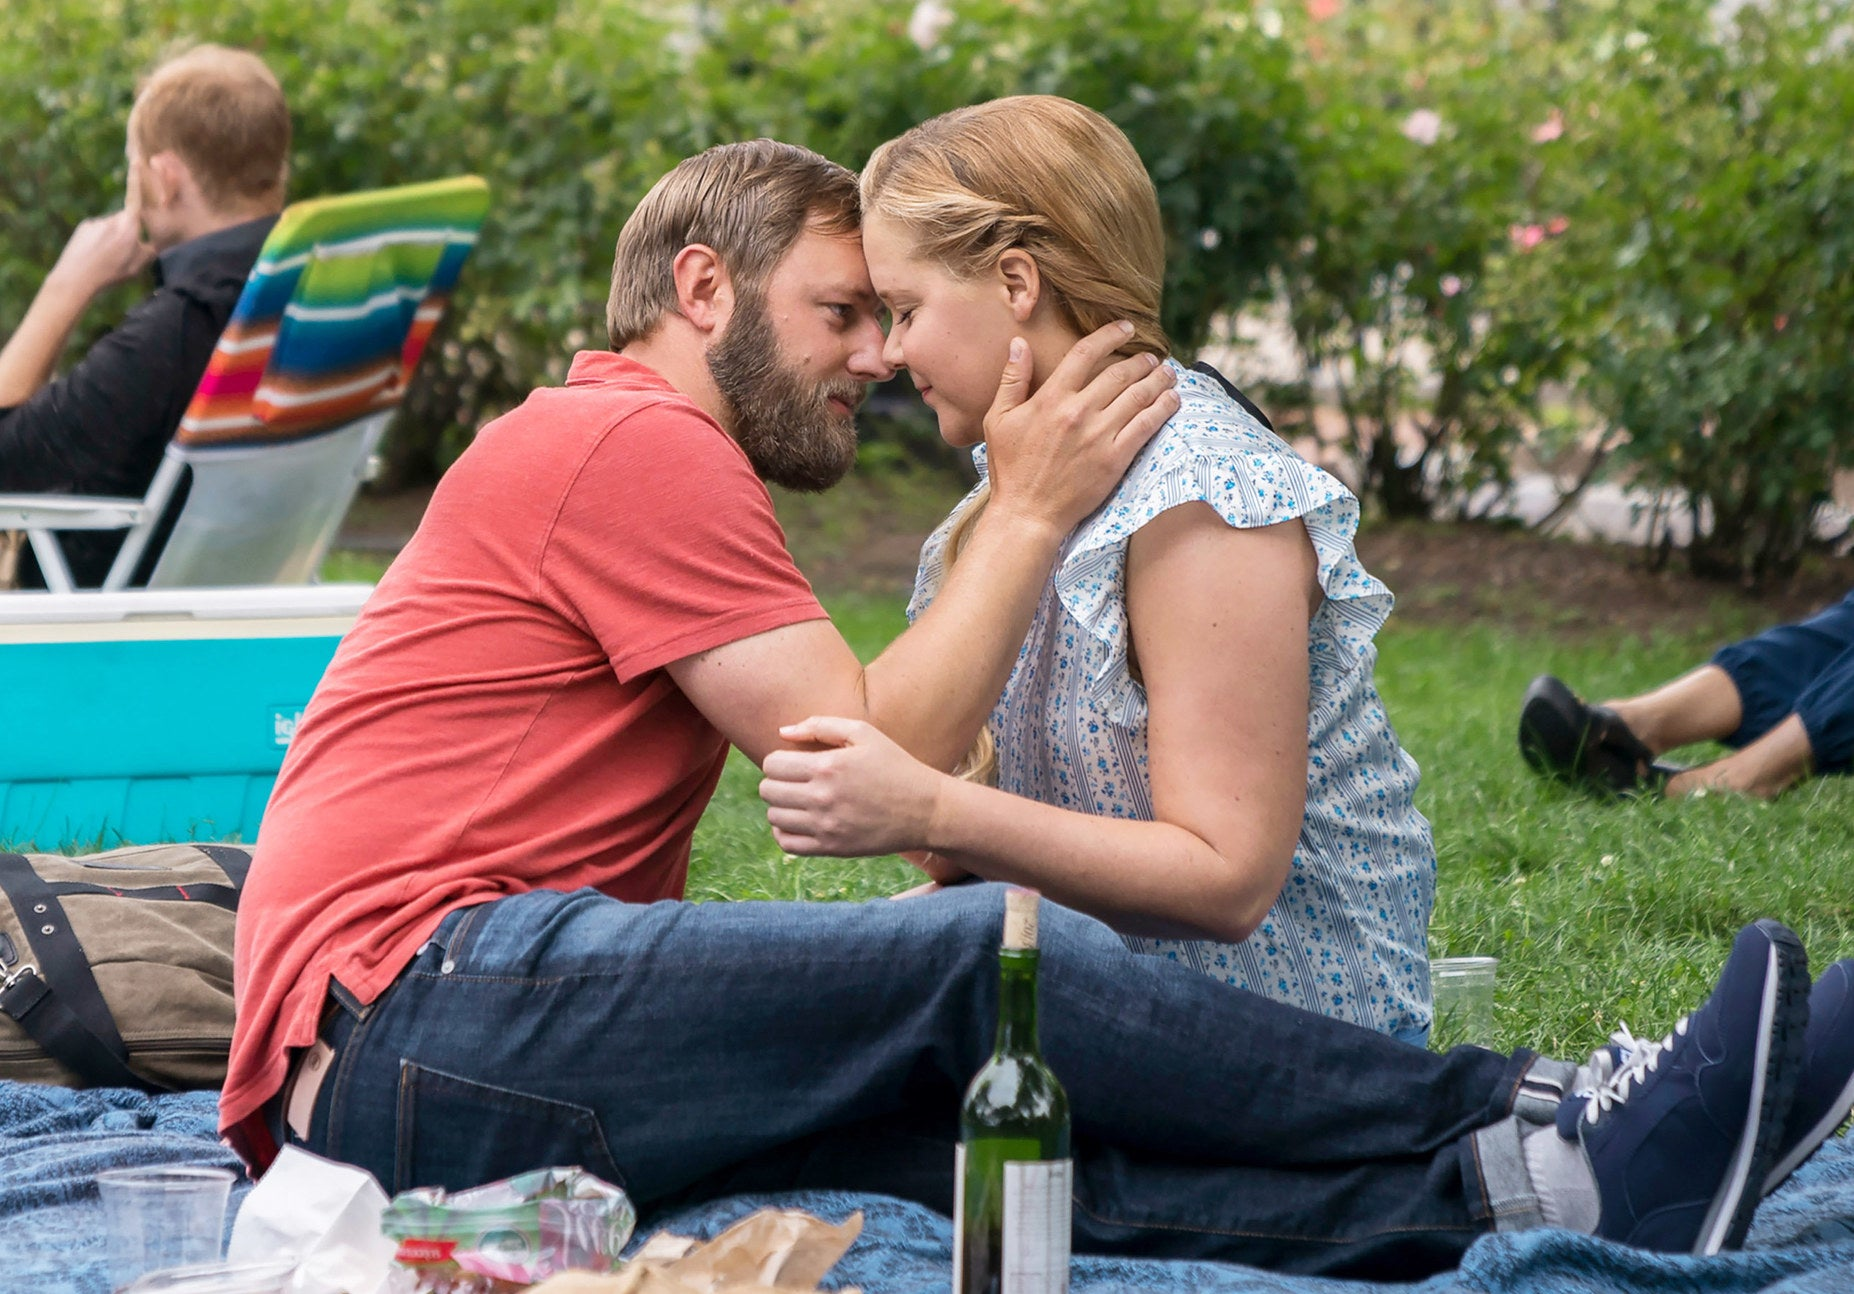 Amy Schumer and her love interest kissing in the movie